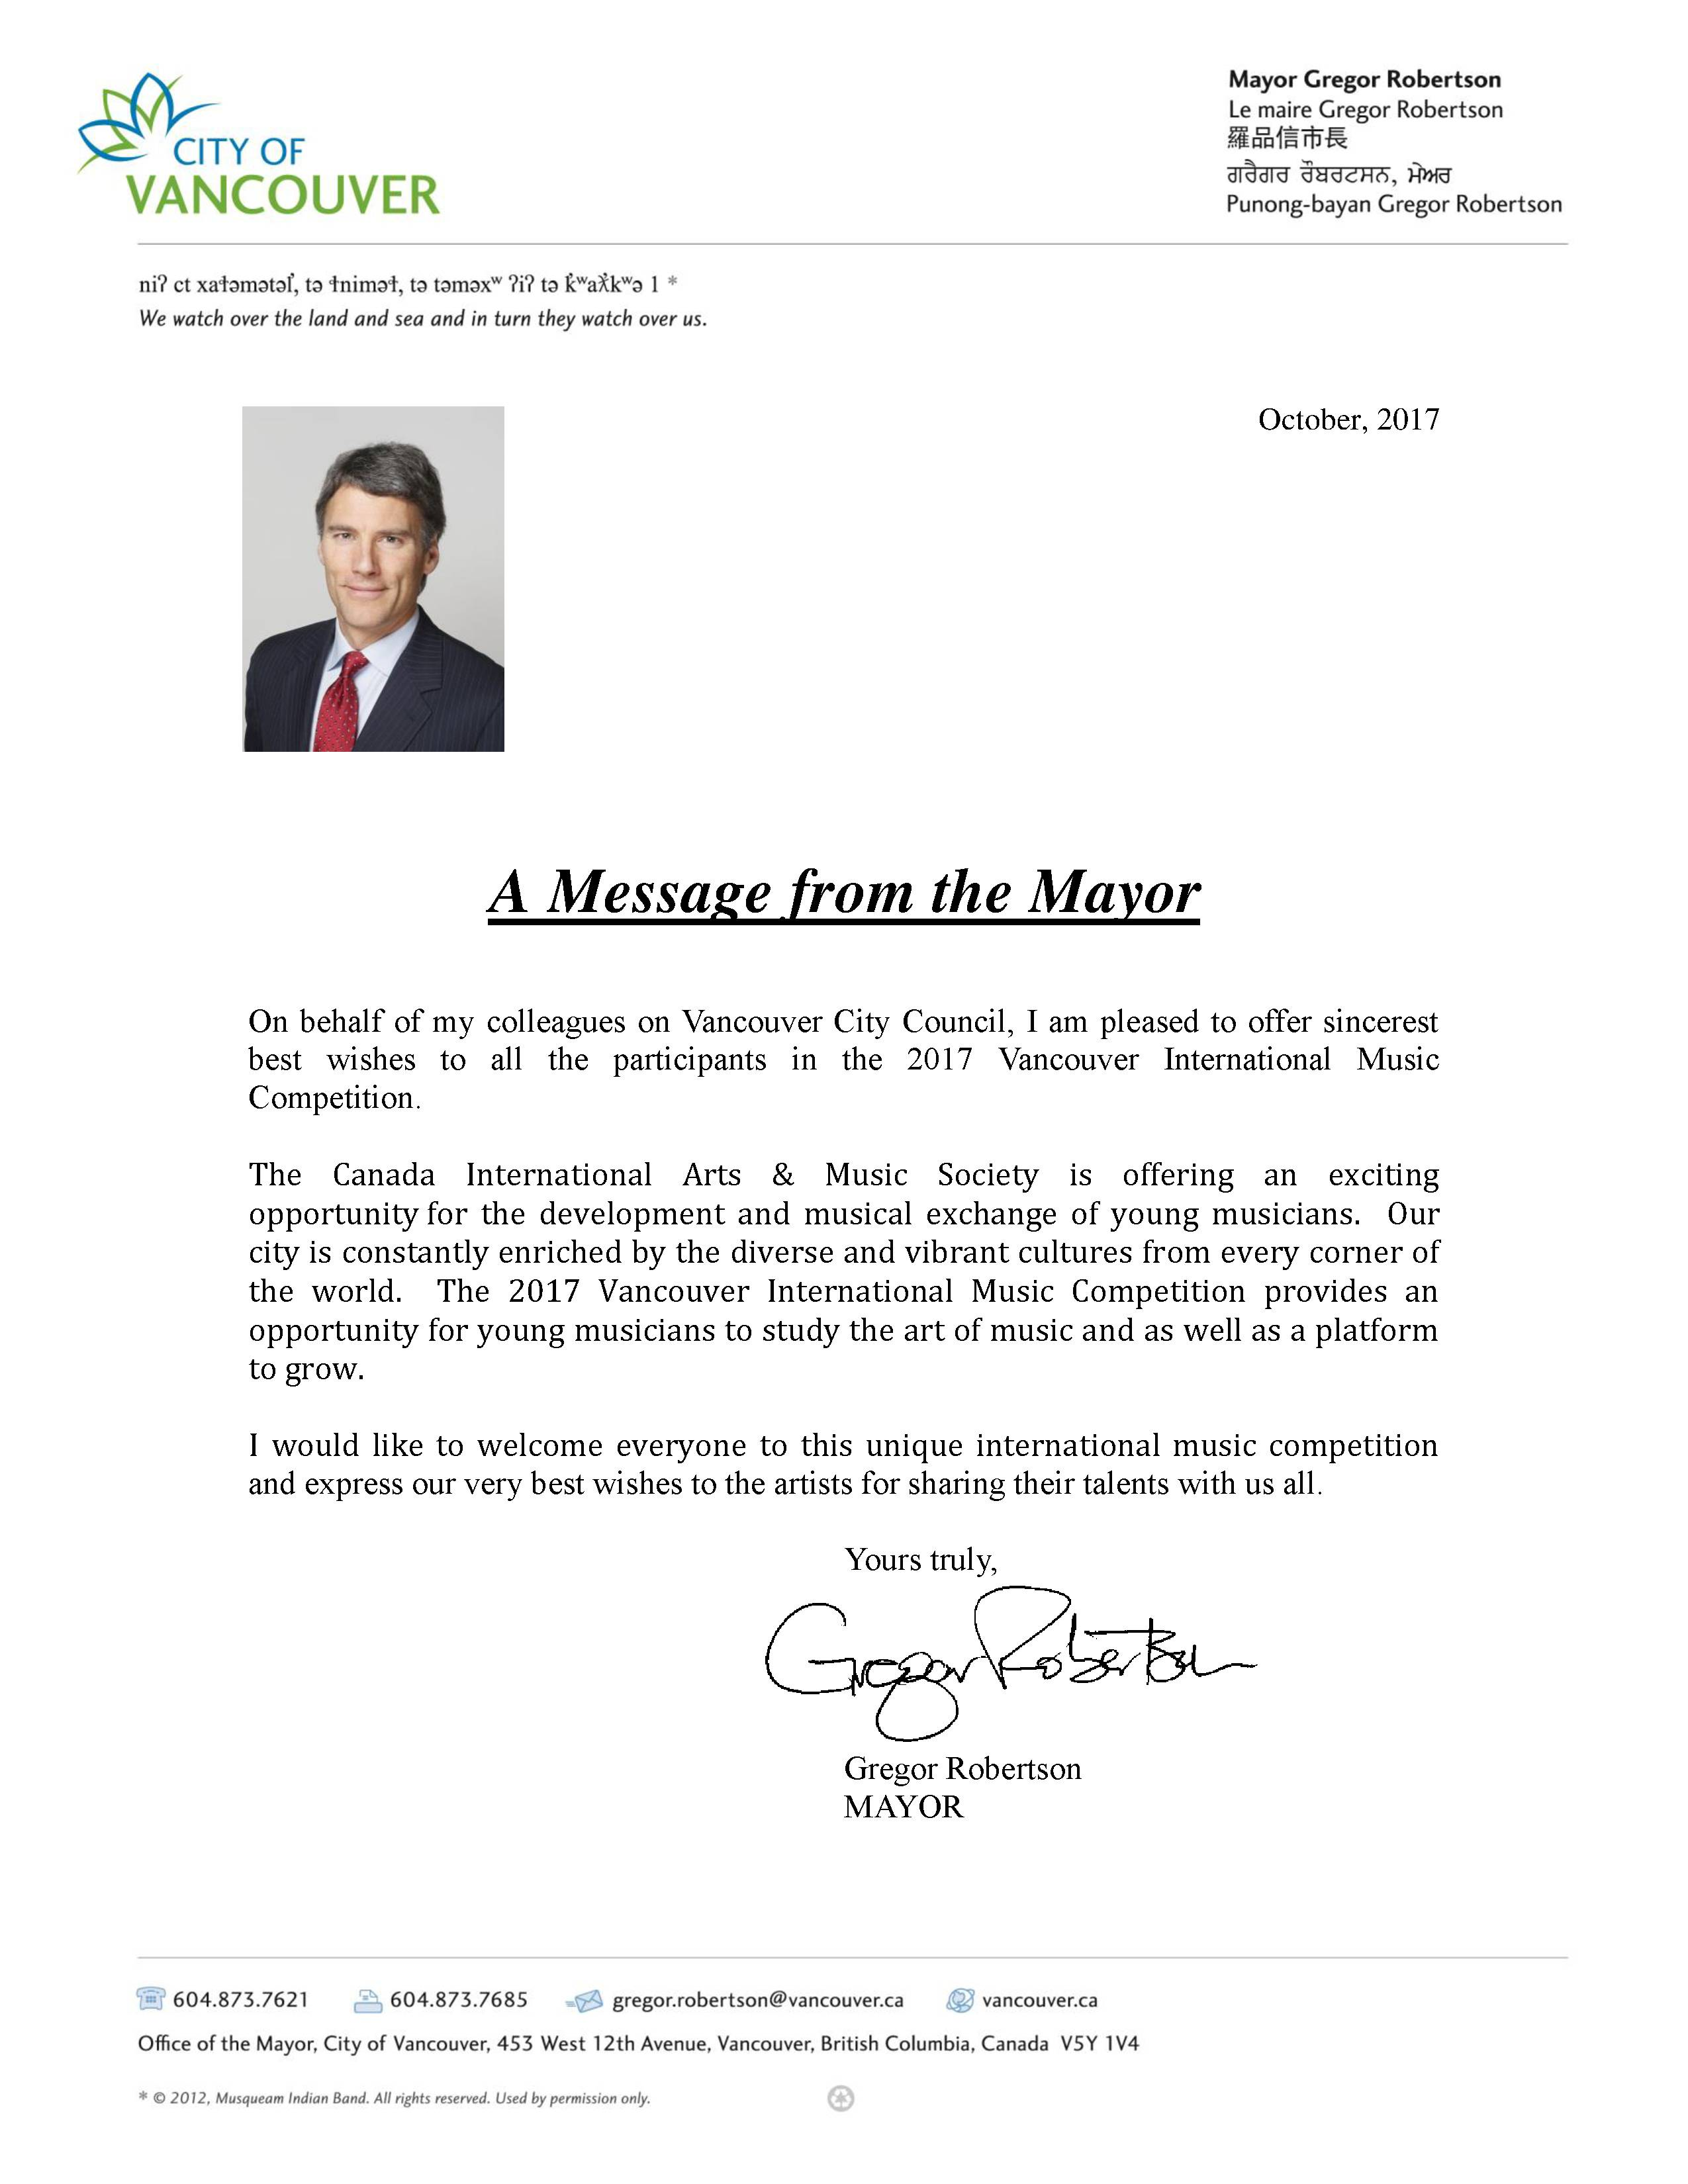 Vancouver Mayor Greeting Letter Vancouver International Music